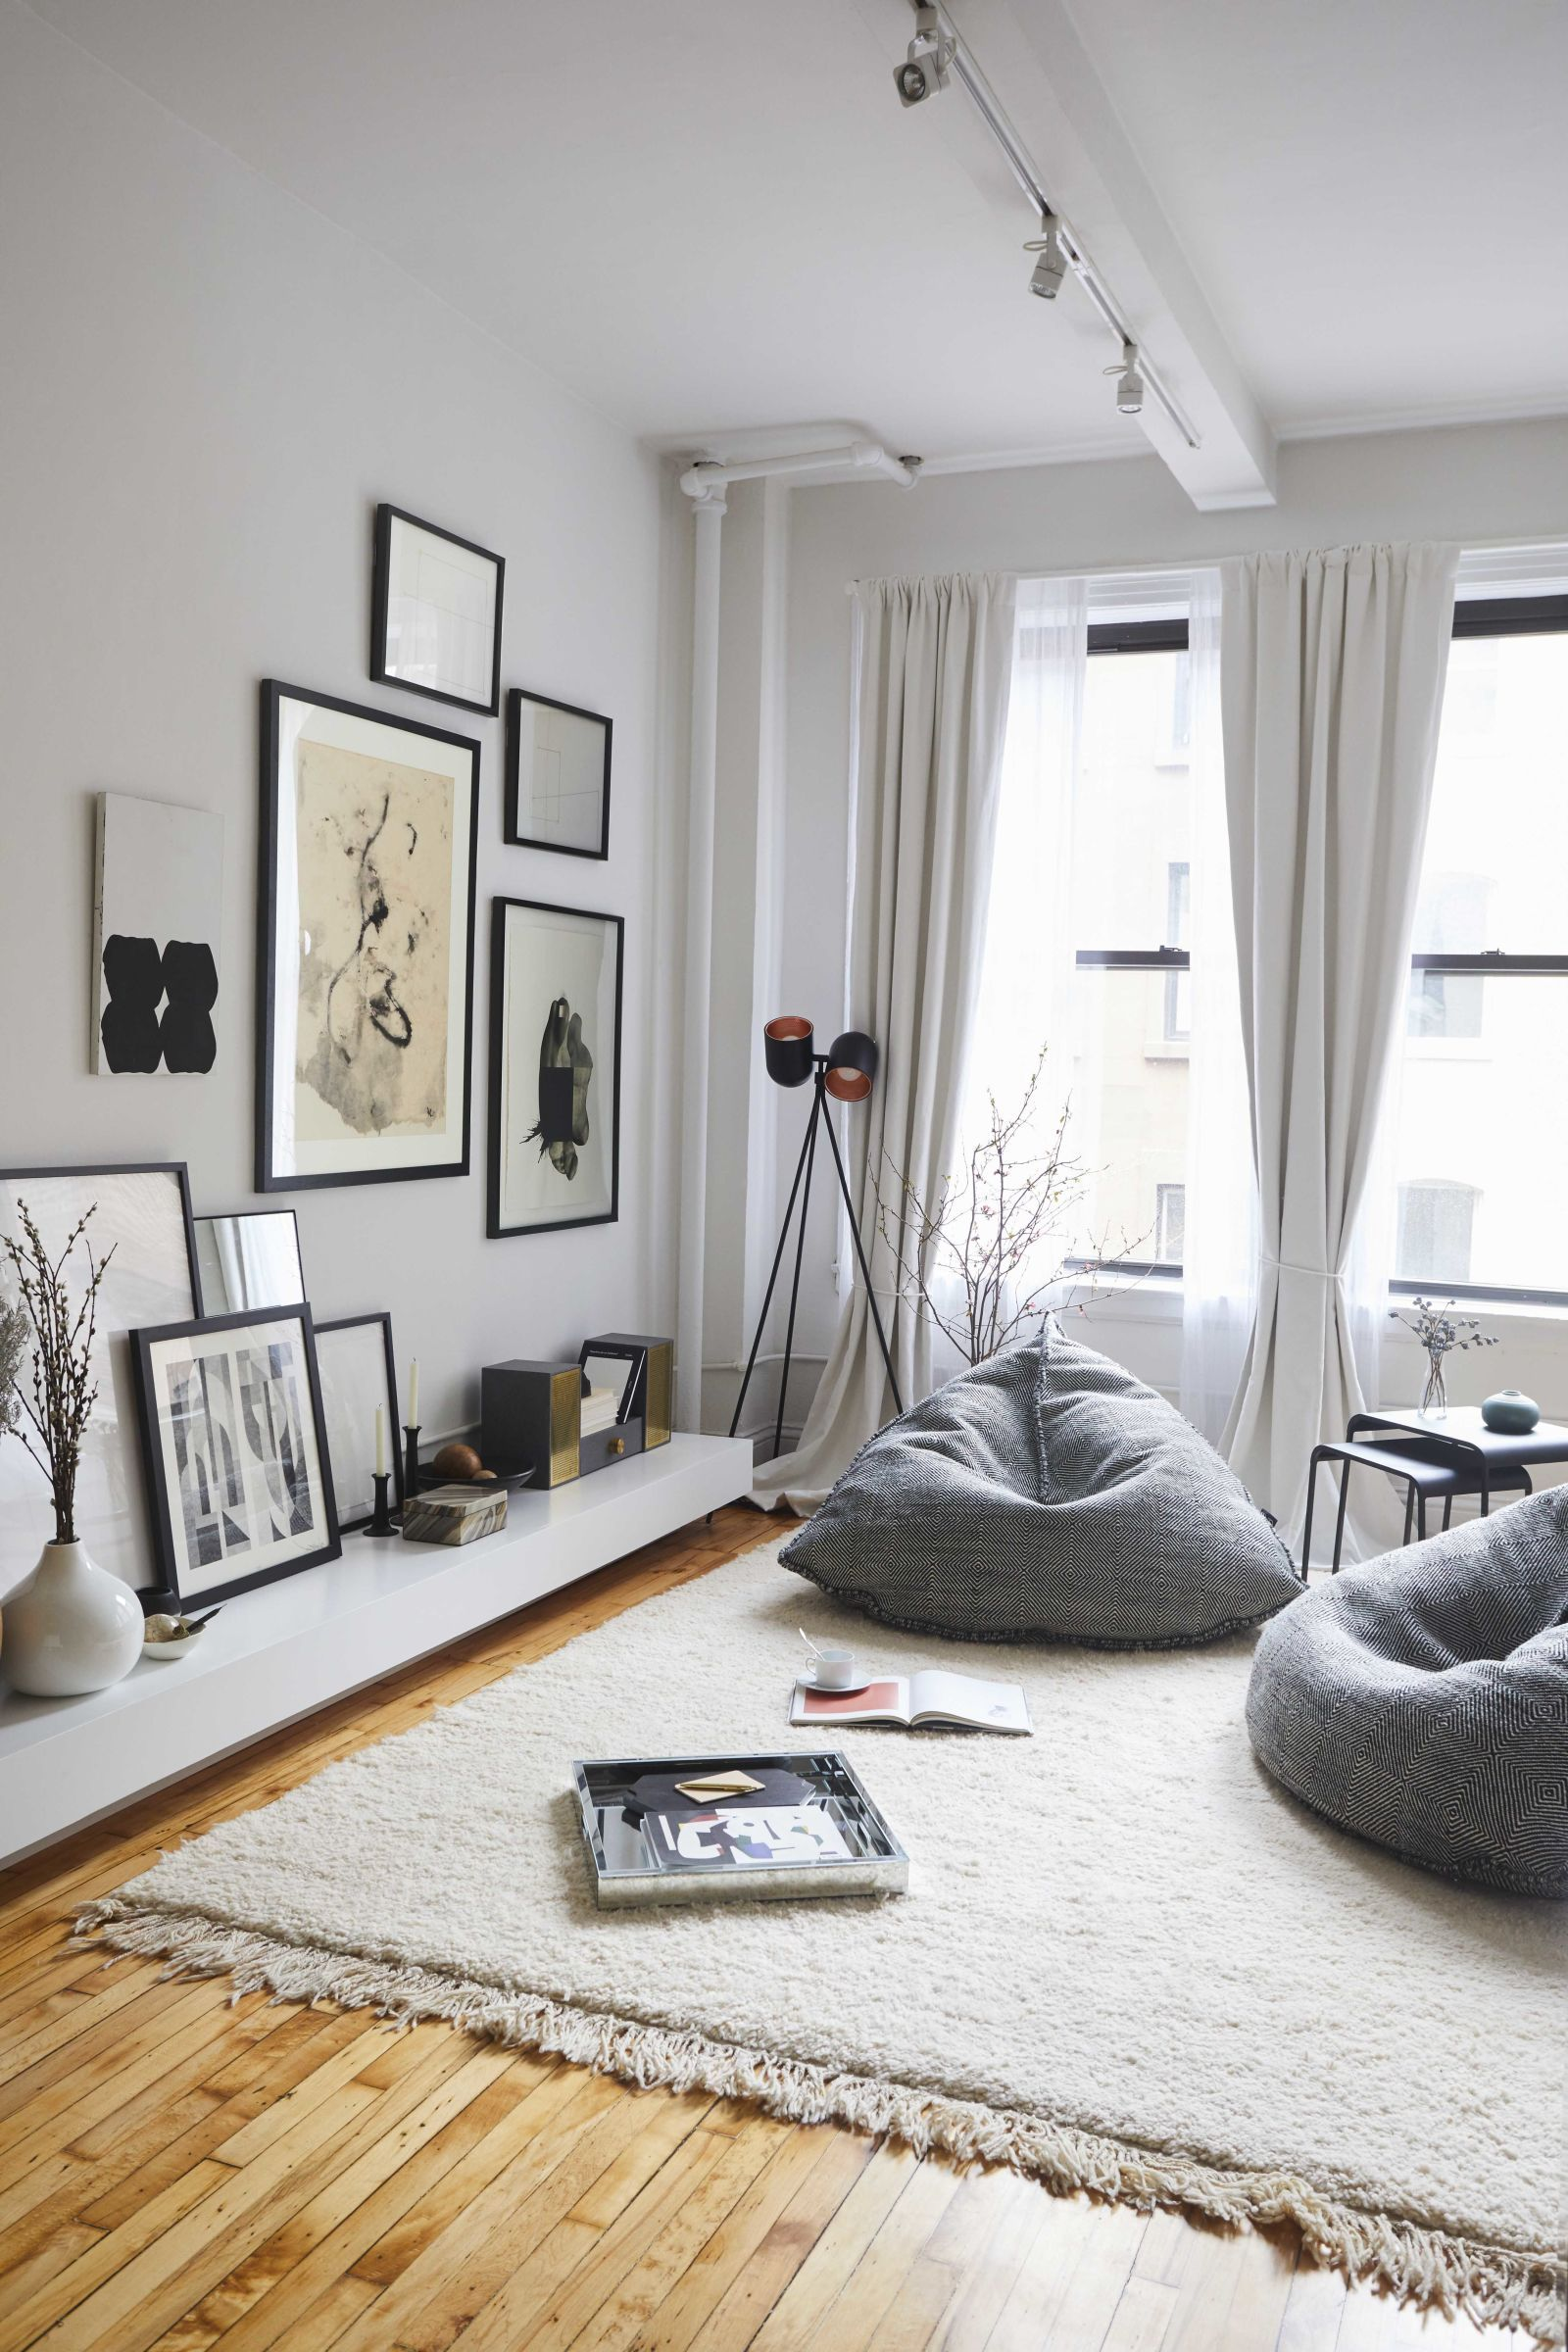 Apartment Living Room Decor Pinterest: This Couple's Insanely Chic Apartment Is Also Their